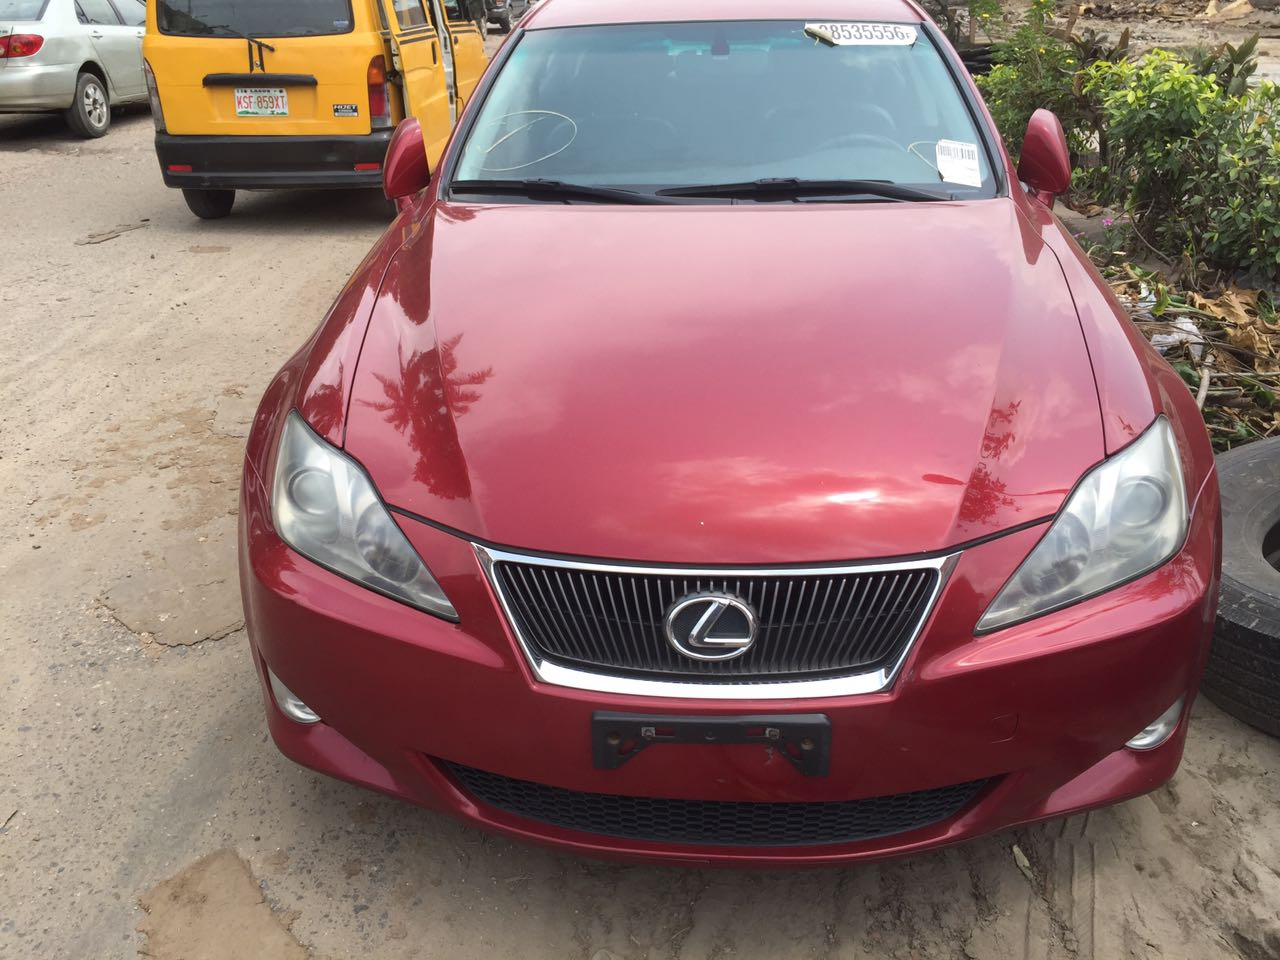 super clean 2007 lexus is 250 awd for sale toks 4 5 m negotiable autos nigeria. Black Bedroom Furniture Sets. Home Design Ideas